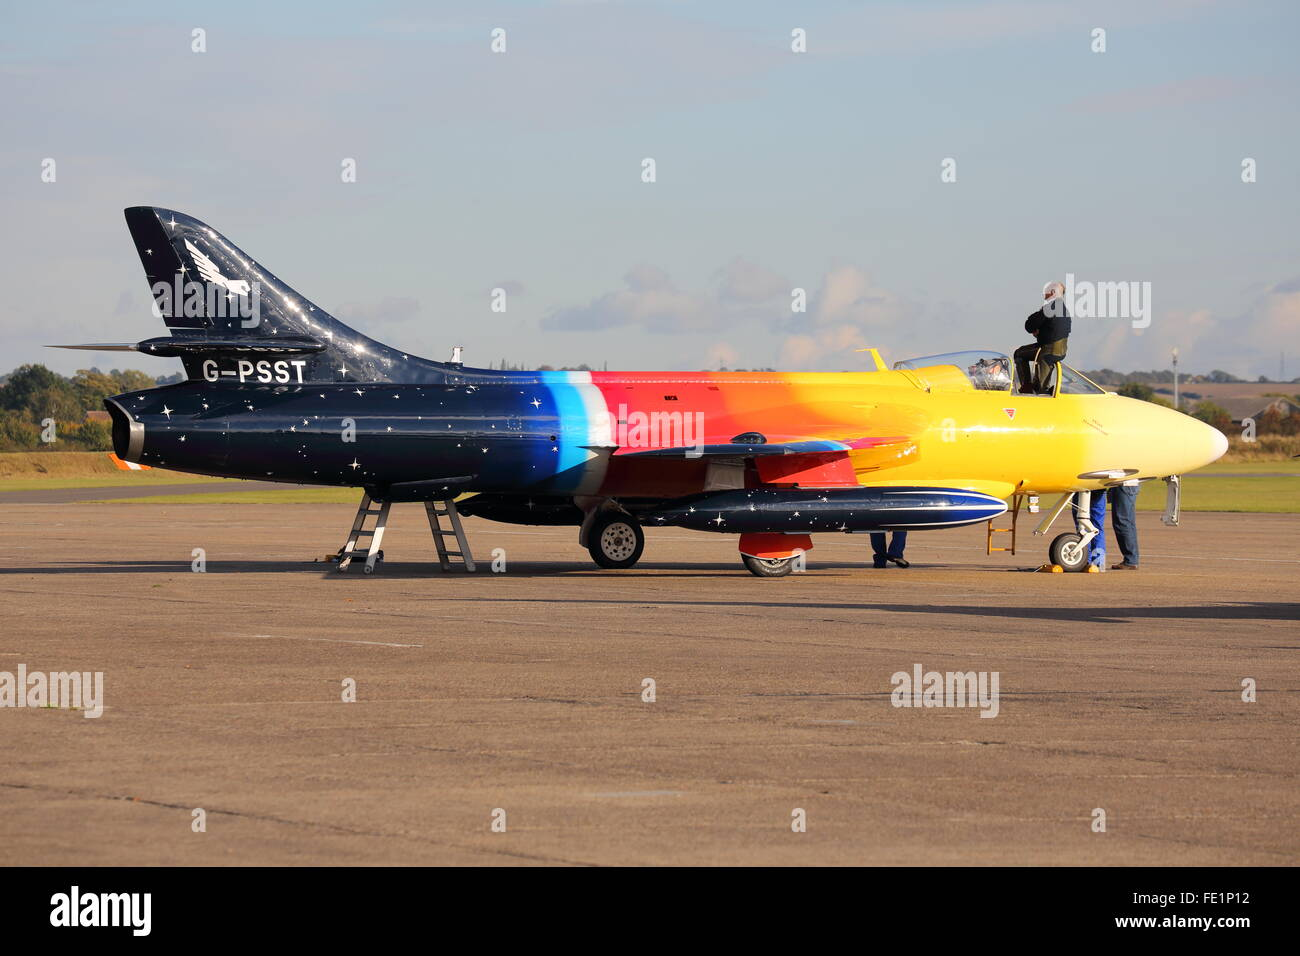 Hawker Hunter Mk. 58A 'Miss Demeanour' G-PSST parked at Duxford Aerodrome during the autumn air show - Stock Image